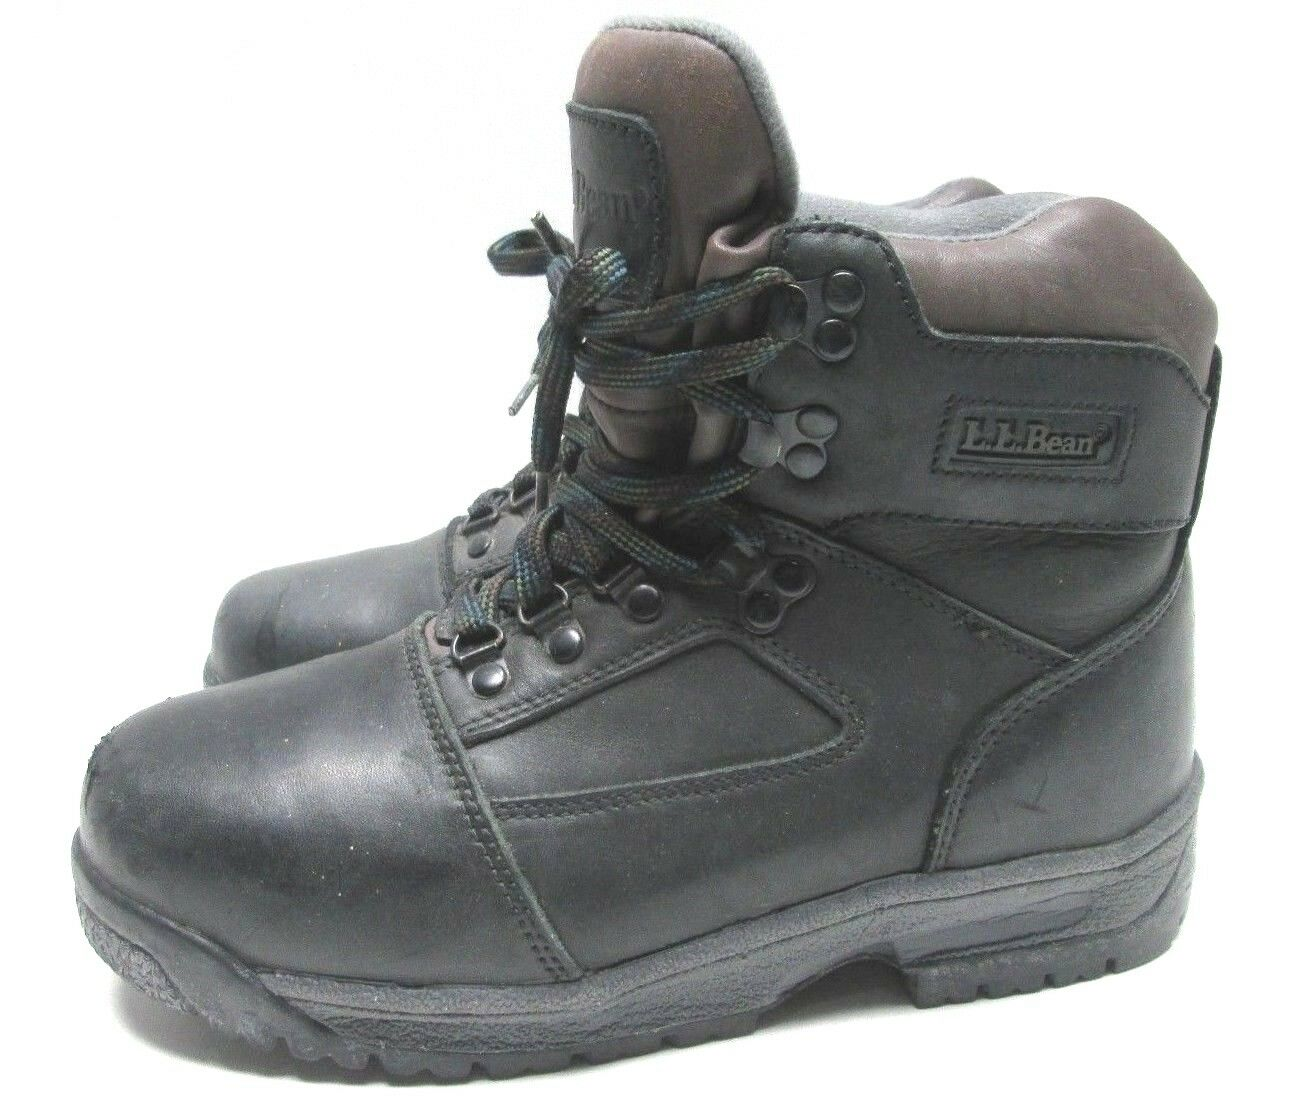 Women's LL Bean Hiker Hiking Boots Gore-Tex Dark Brown Size 8 Leather